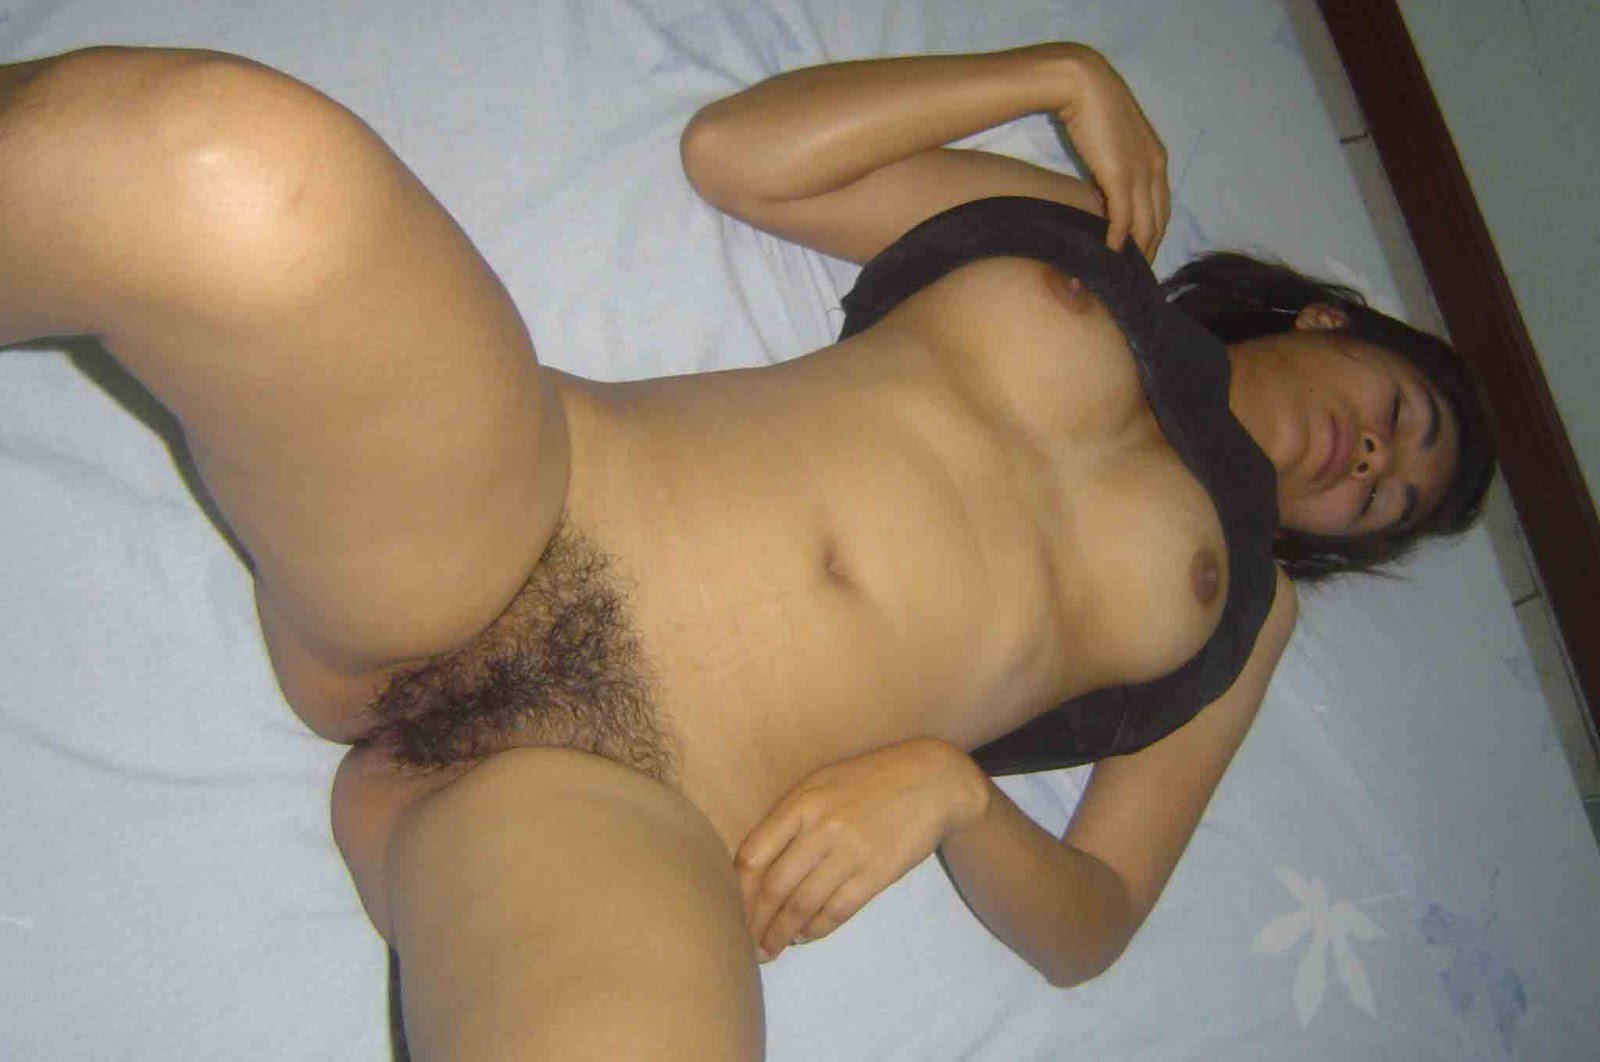 Horny  Indian girl her shaved pussy filled Pussy Spreading Lingerie Indian Female Ethnic Deep Throat Blowjob